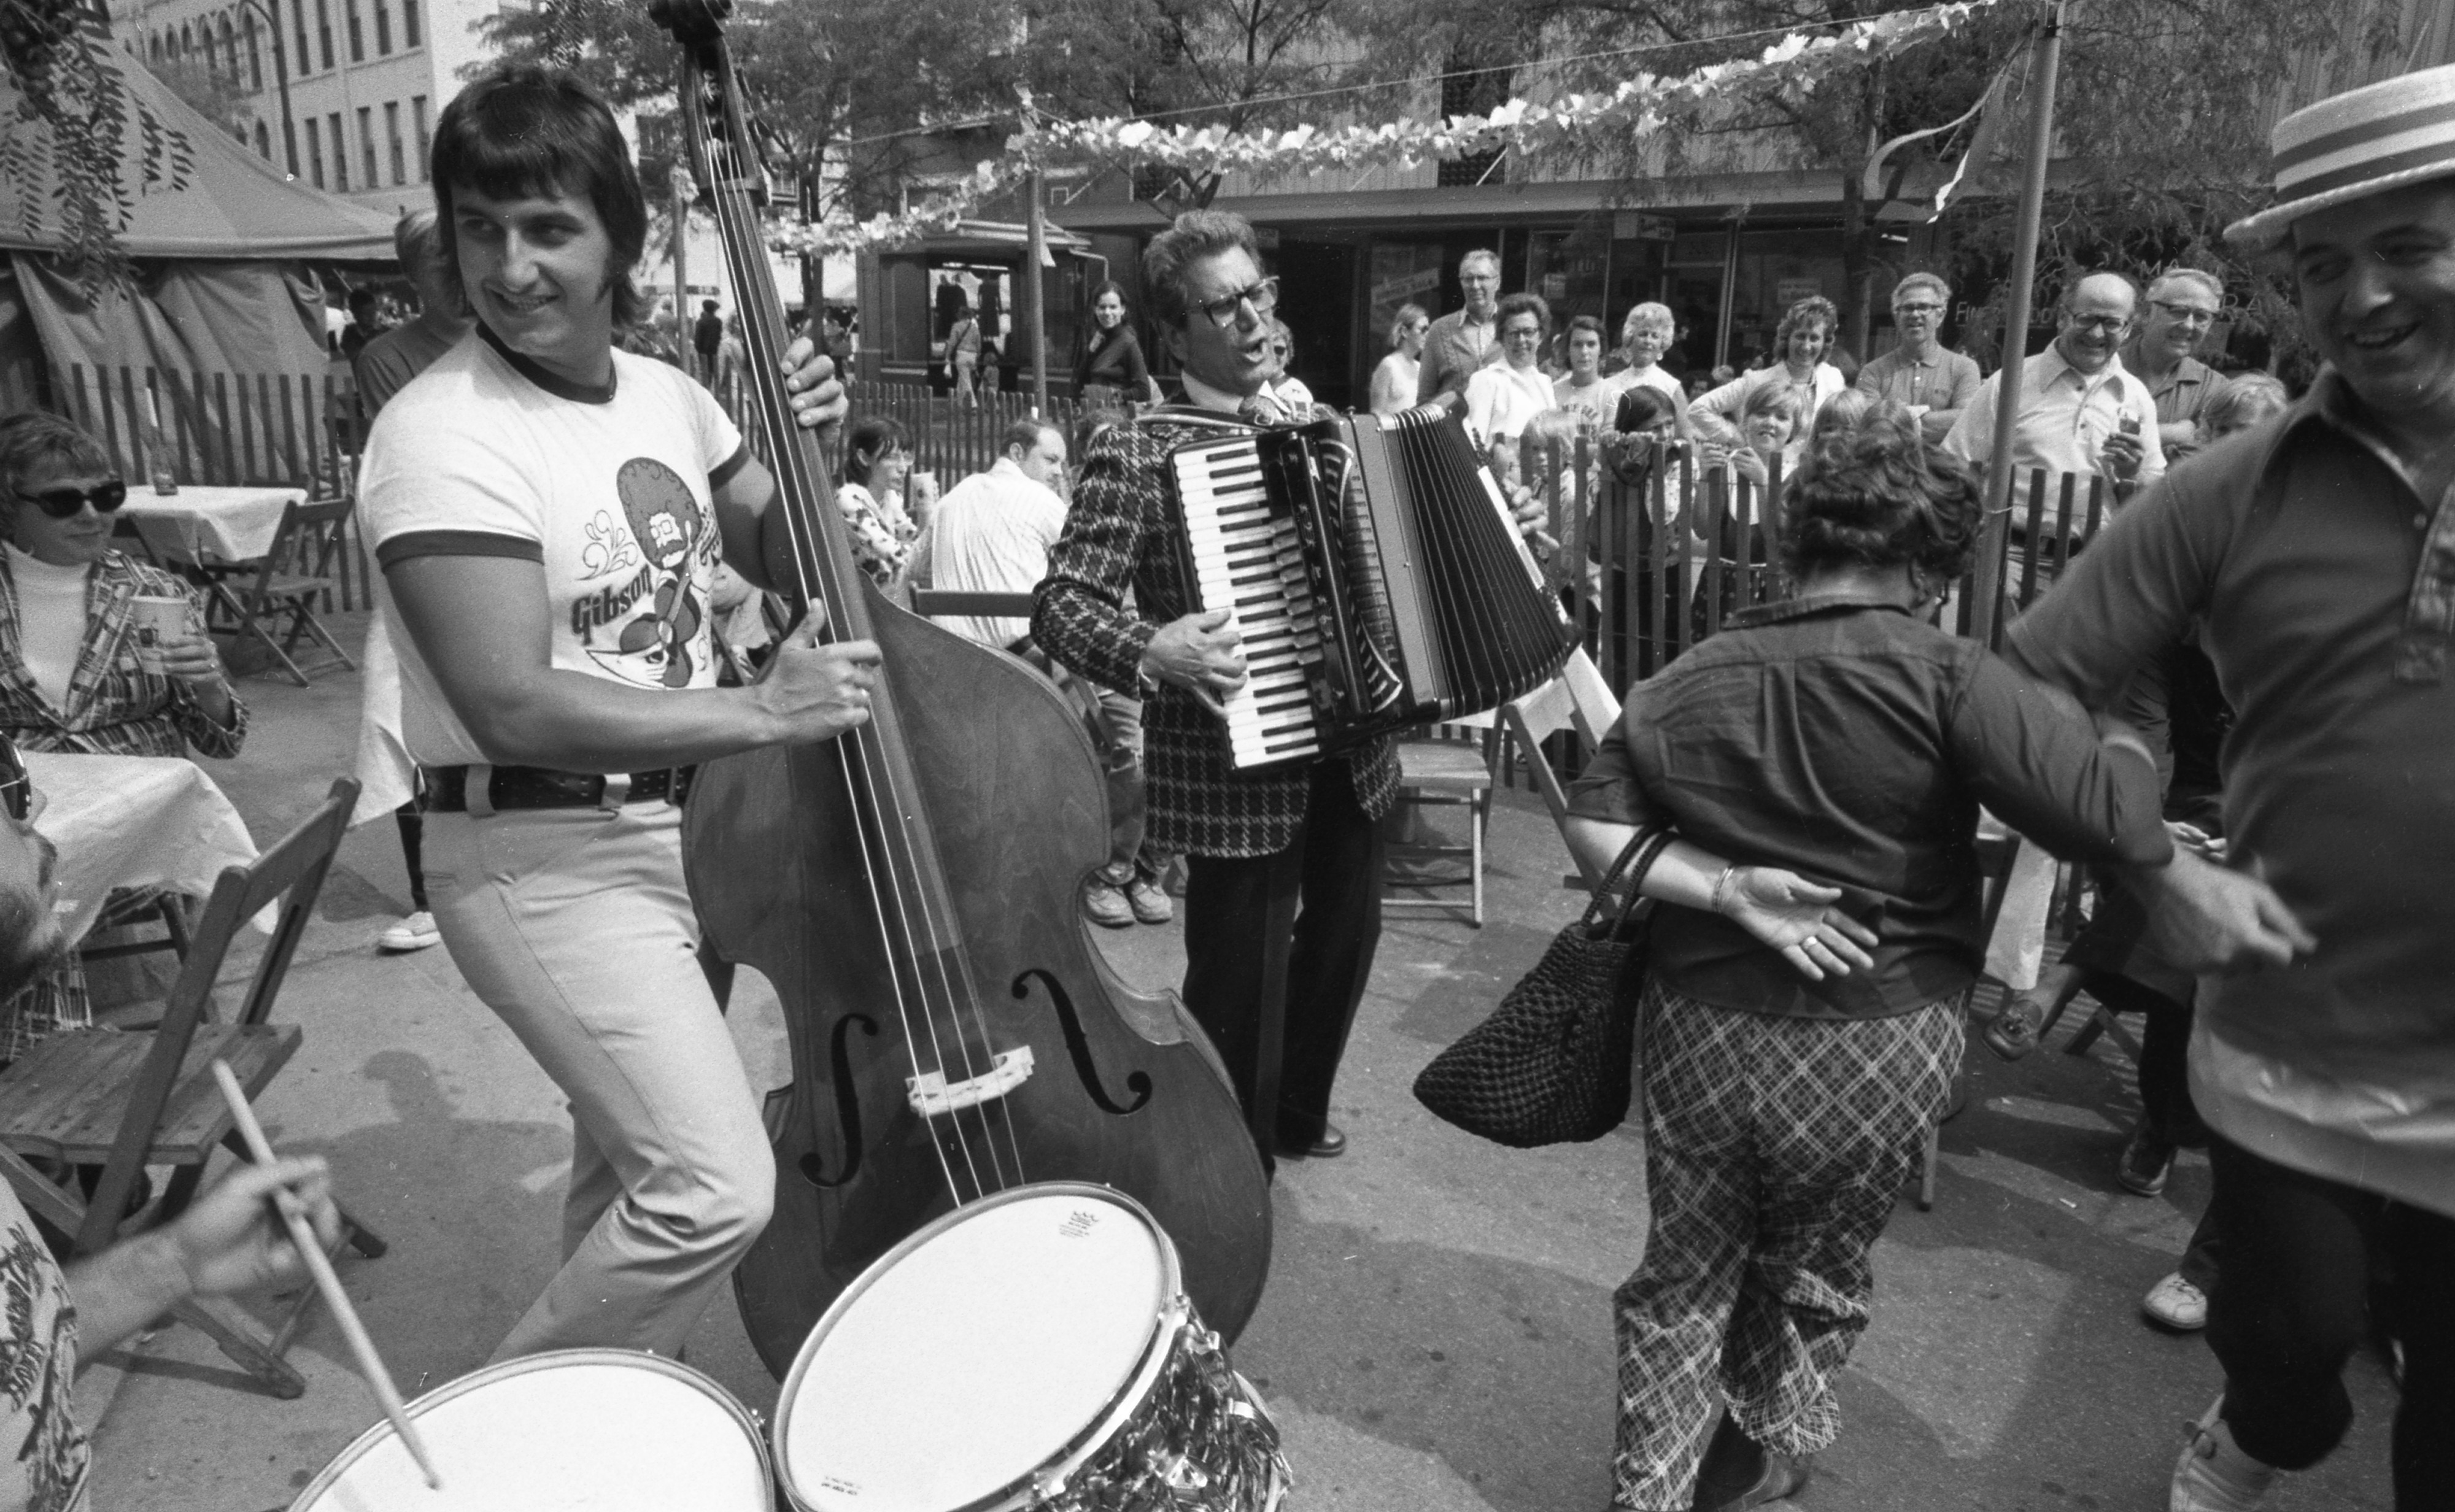 Al Nalli Jr. Plays The Bass While Al Nalli Sr. Plays The Accordion At The Ann Arbor Ethnic Fair, September 1974 image